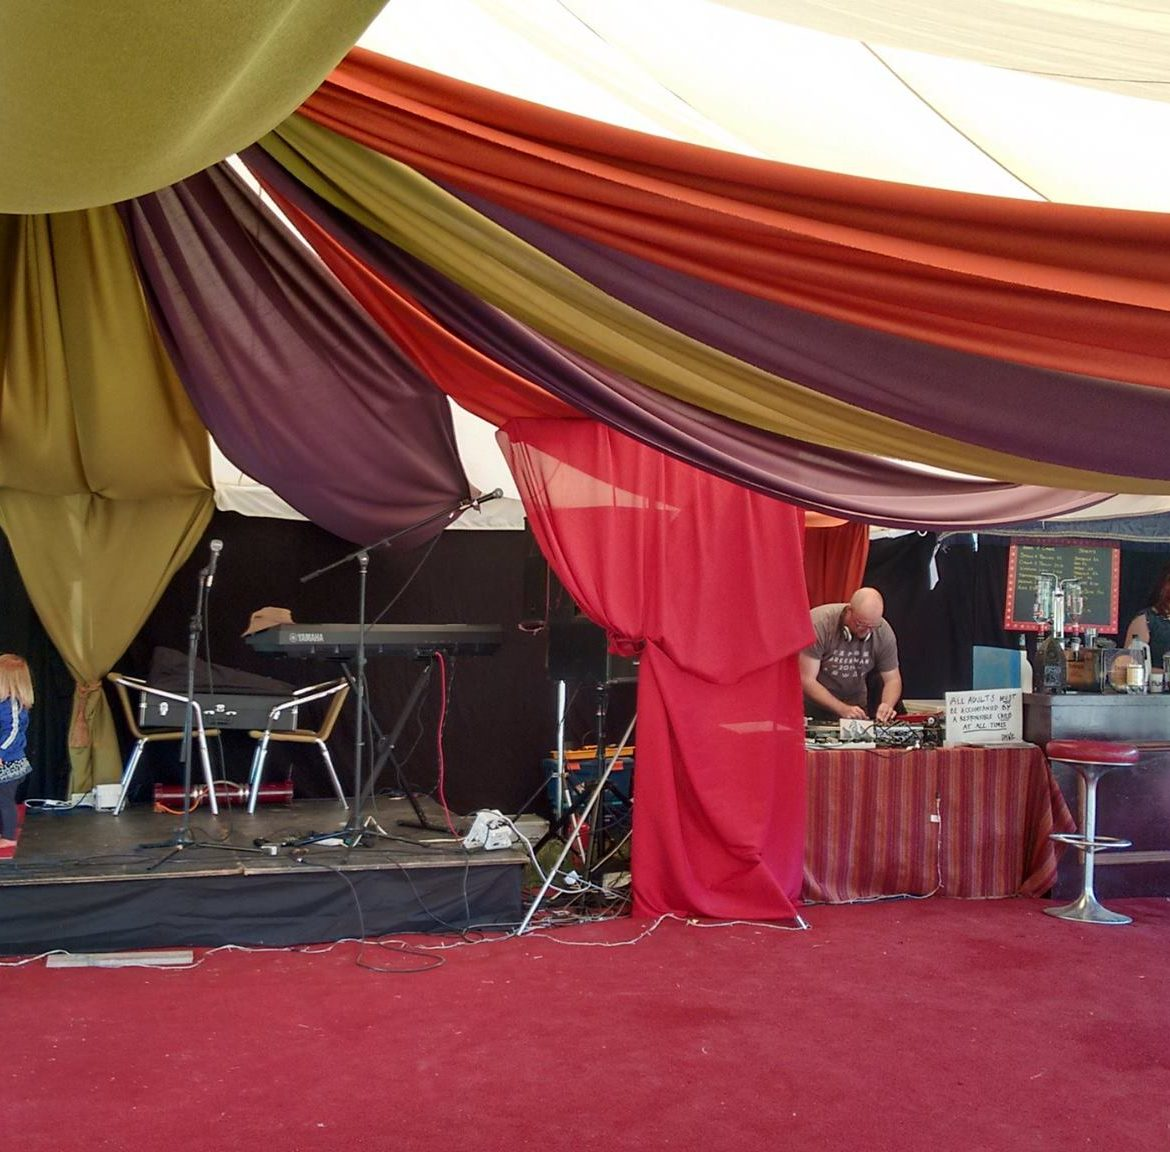 30x45' modular frame tent with Moroccan style drapes